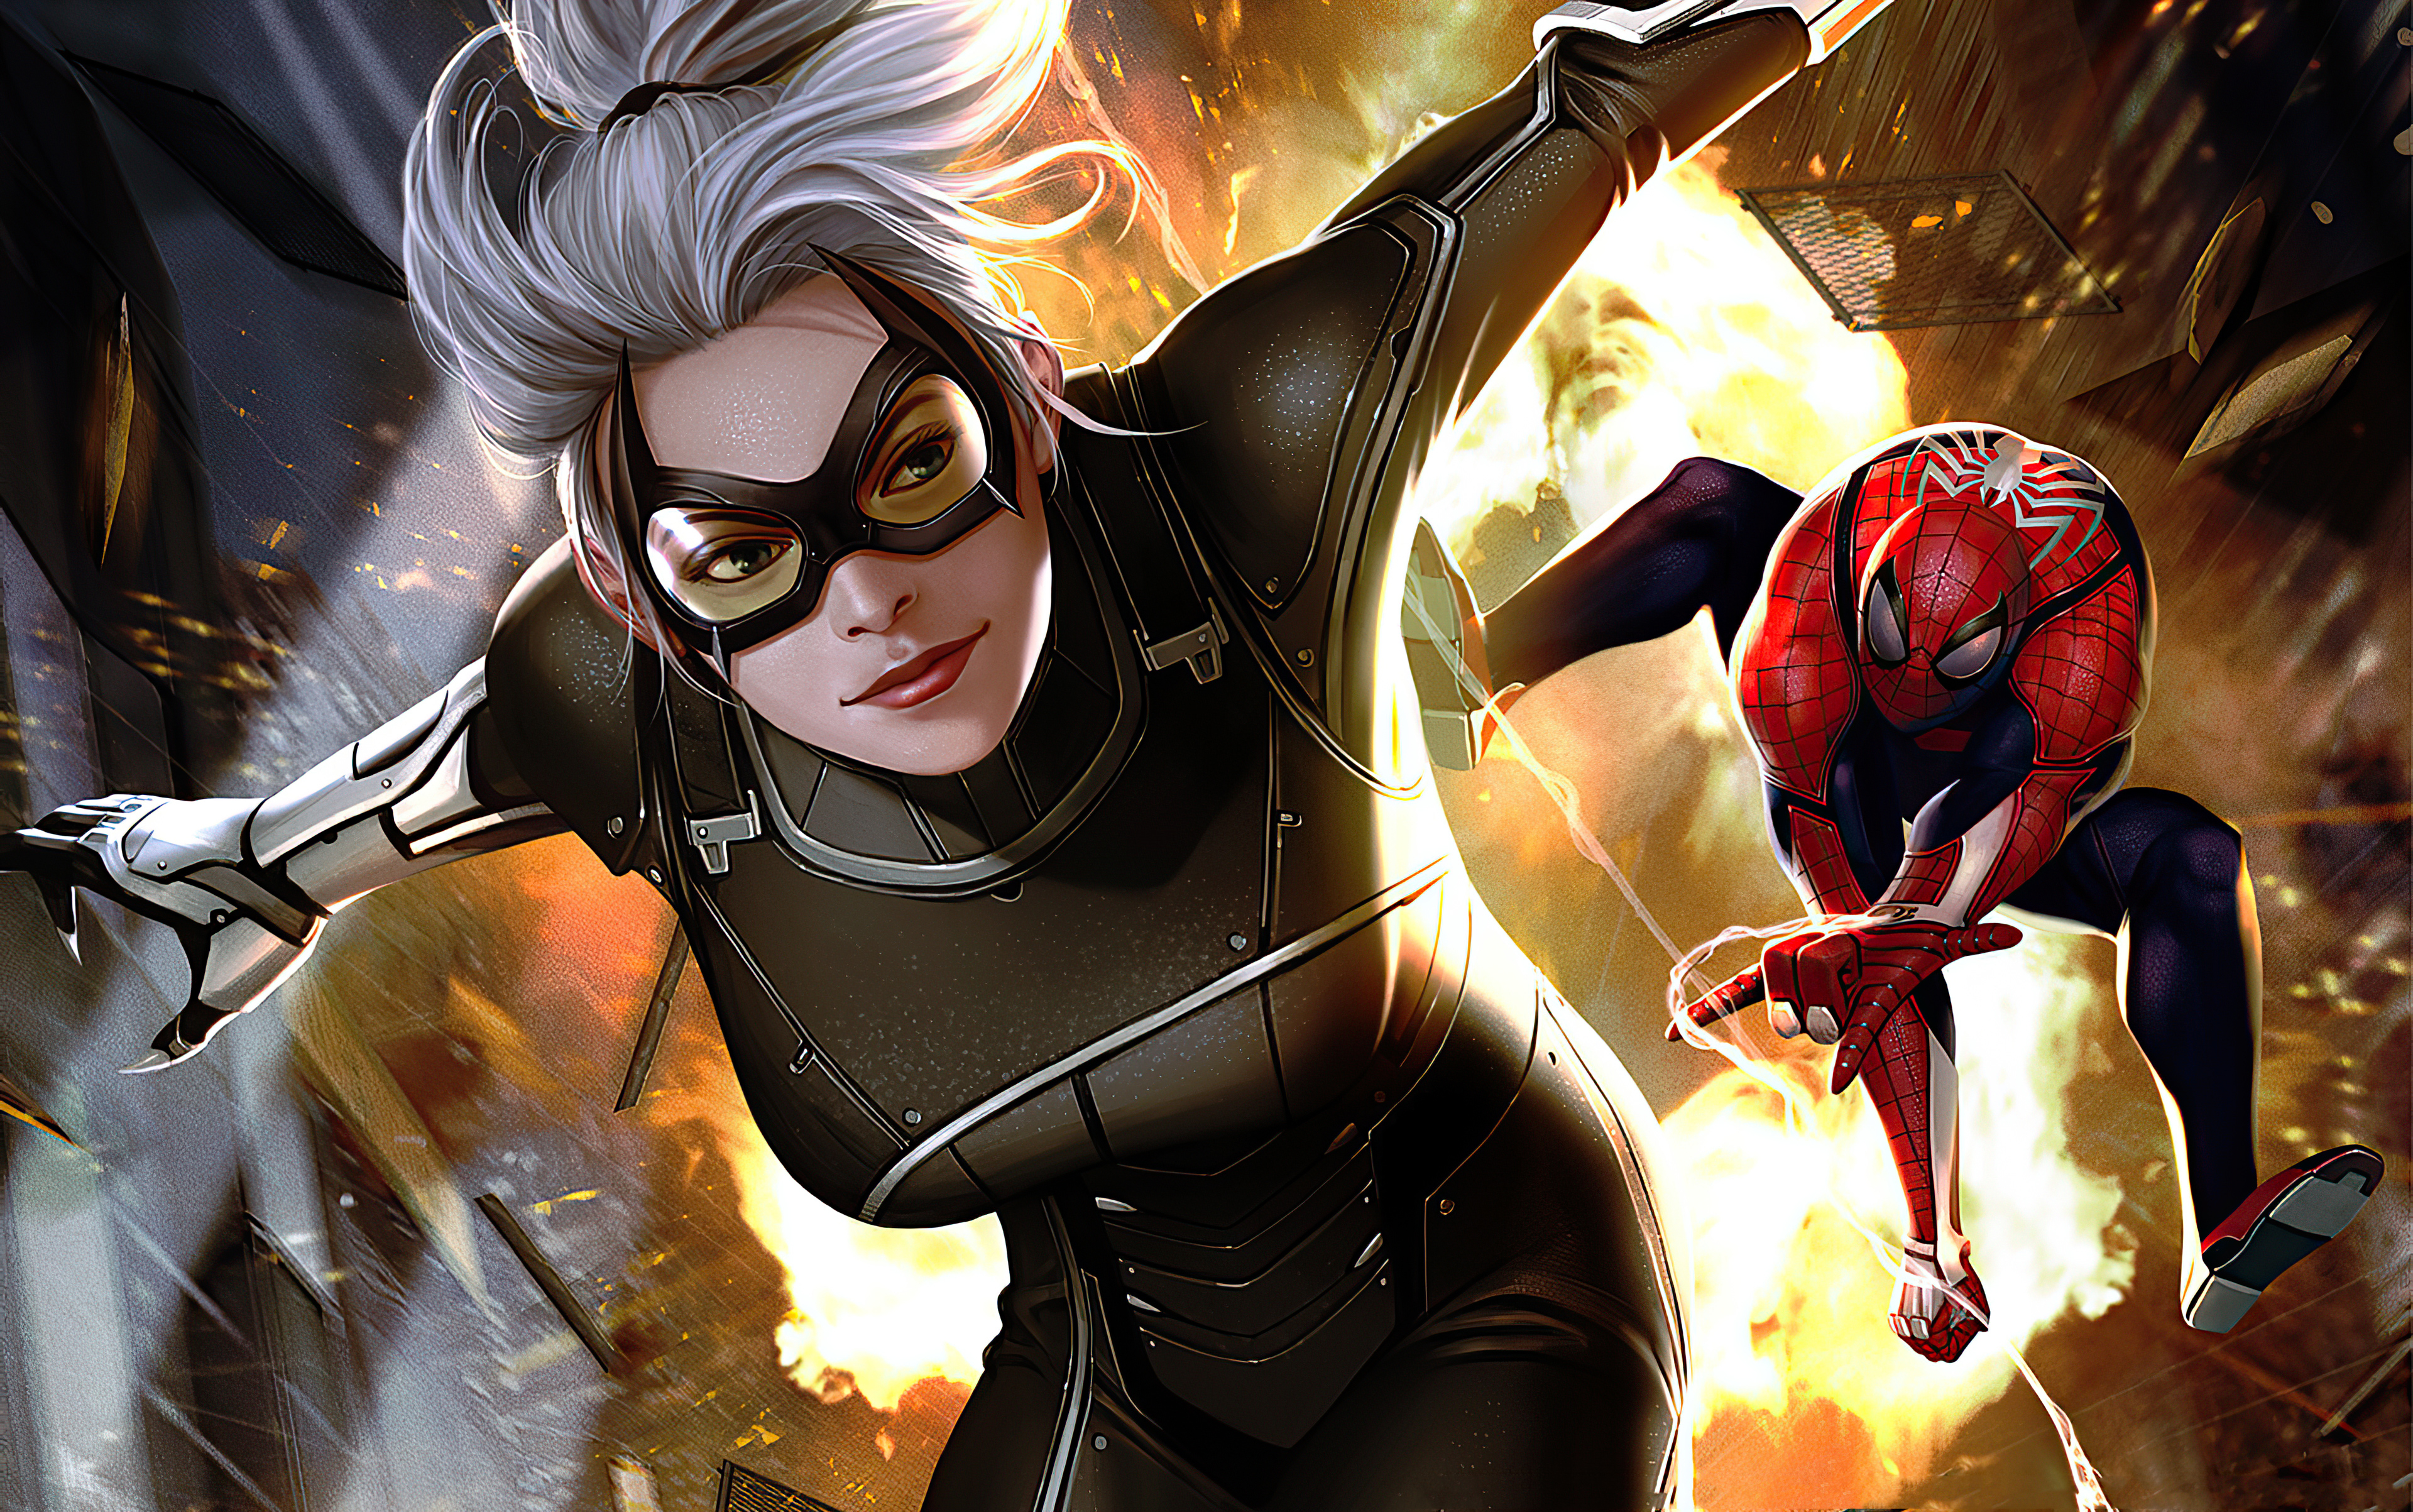 2560x1024 Black Cat Marvel Comic Art 2560x1024 Resolution Wallpaper Hd Superheroes 4k Wallpapers Images Photos And Background